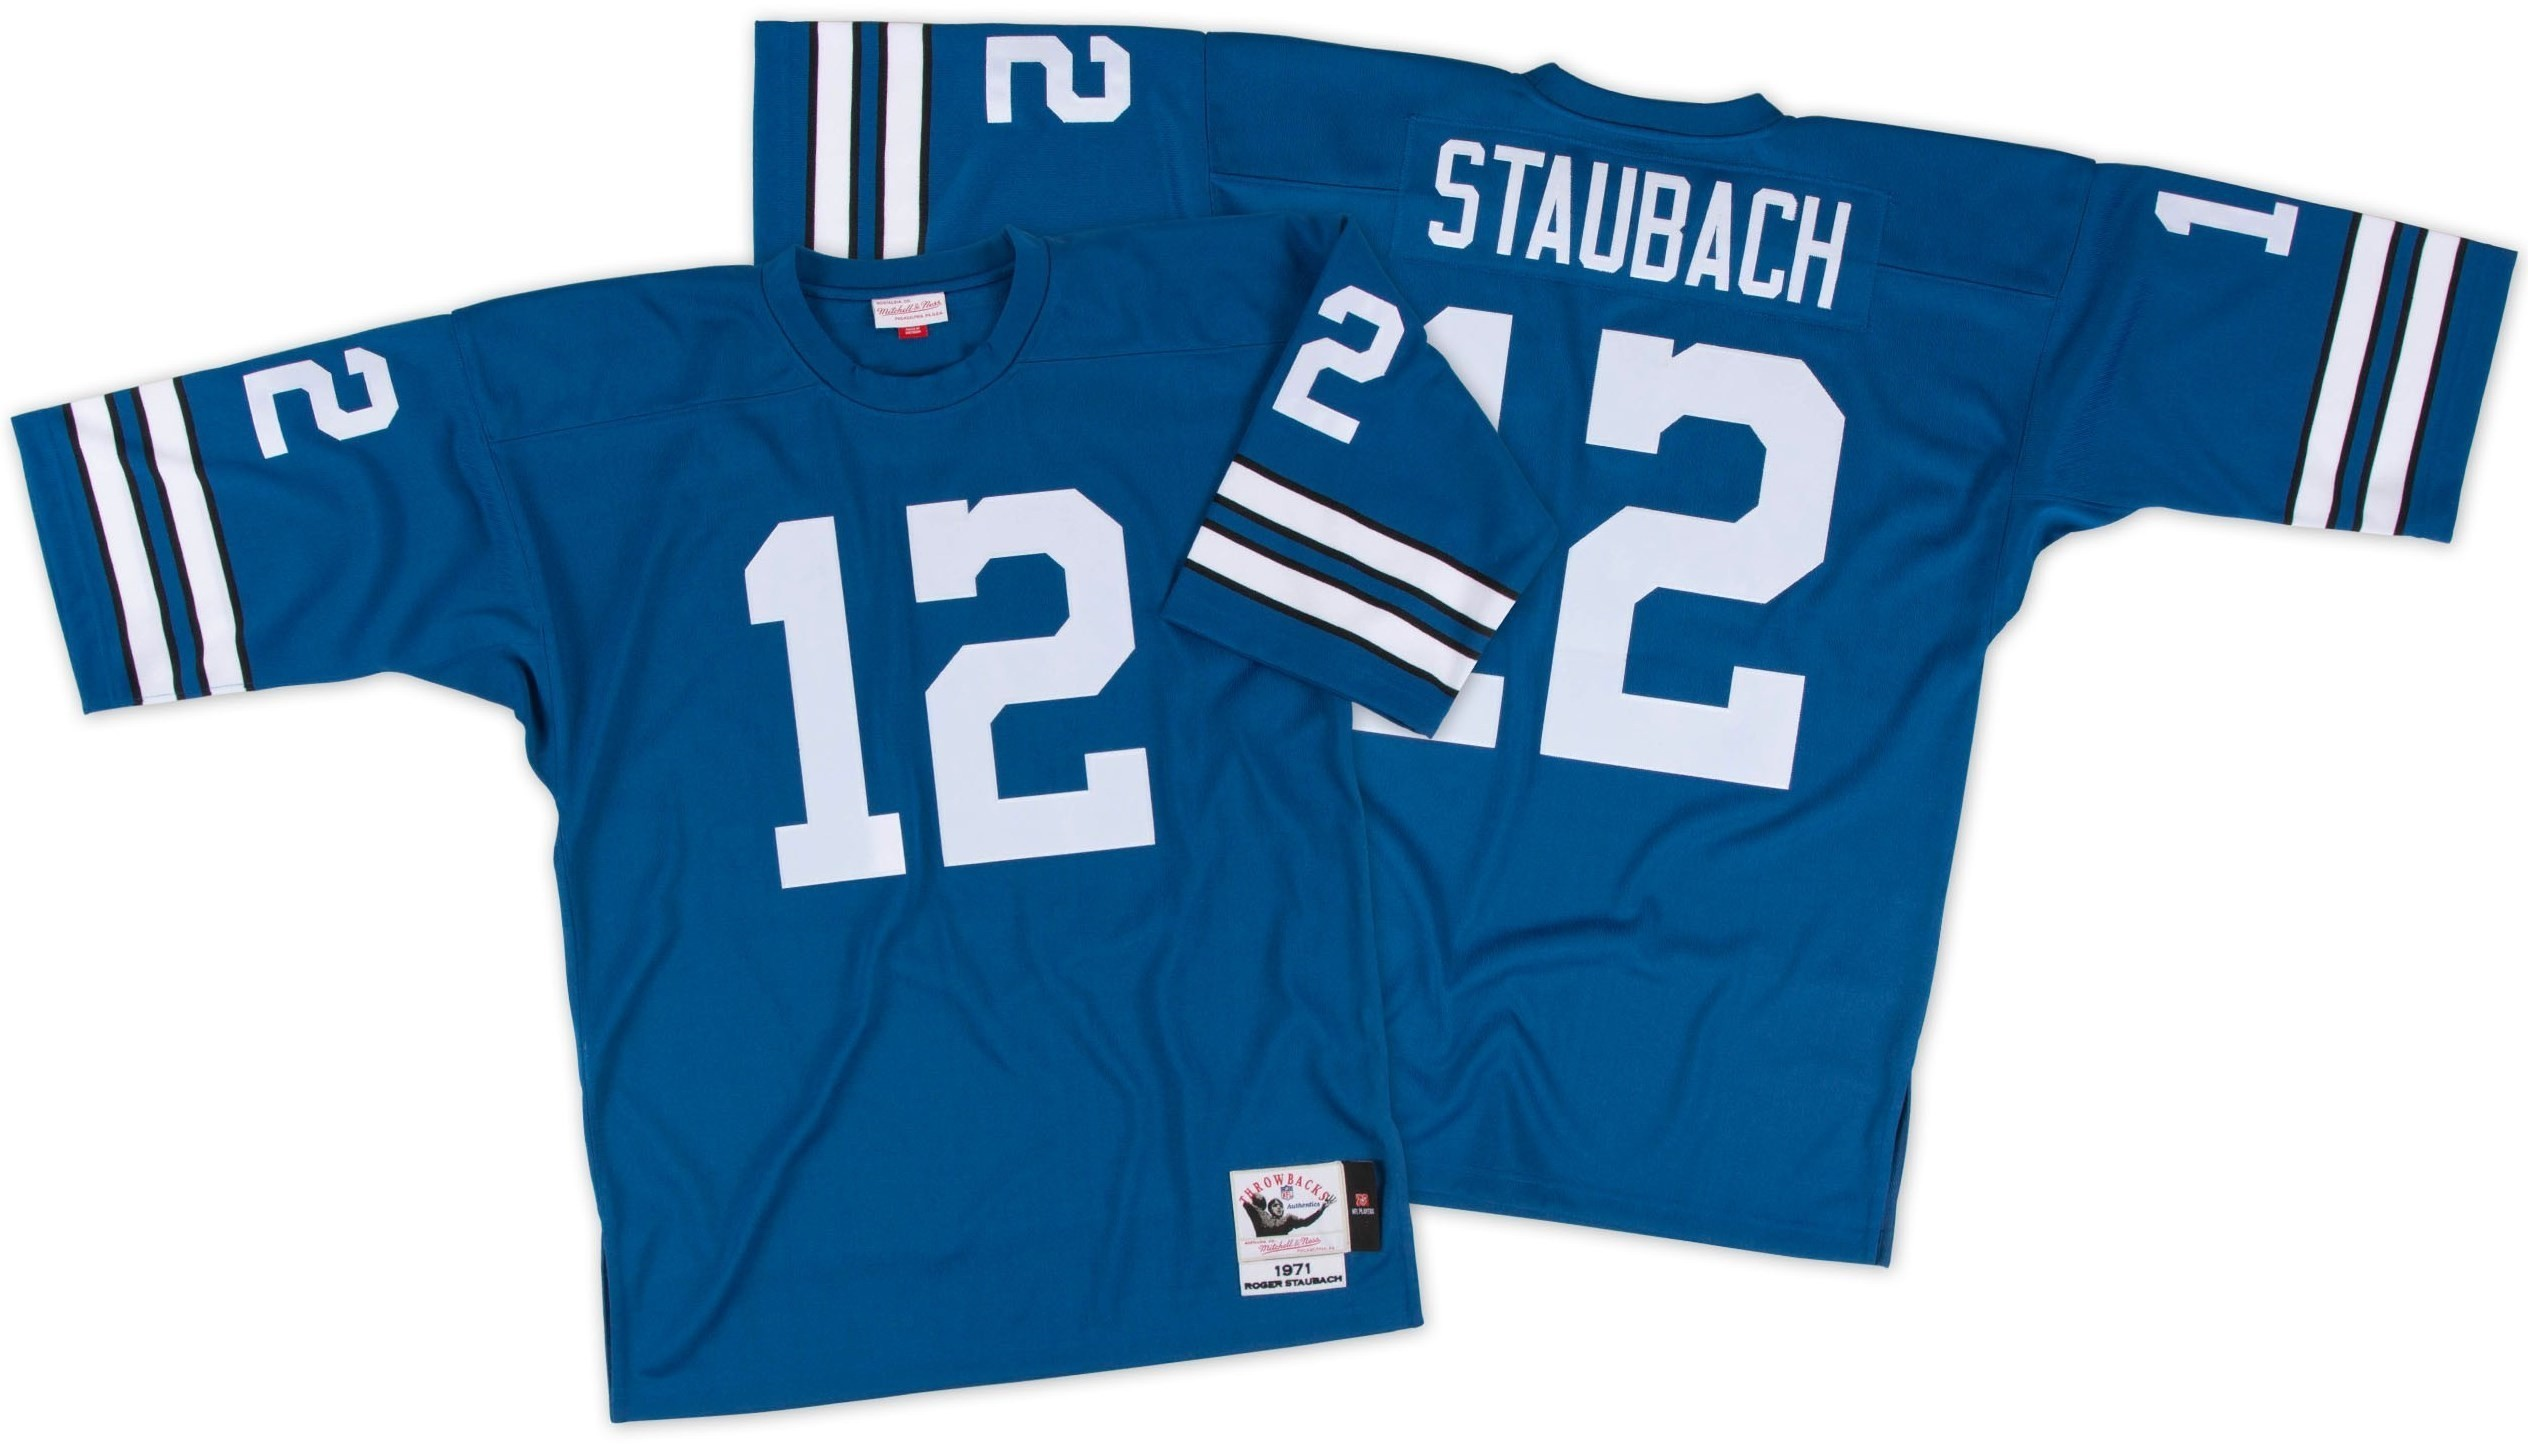 6e5a9b51 Details about Roger Staubach Dallas Cowboys Mitchell & Ness Authentic 1971  Blue NFL Jersey